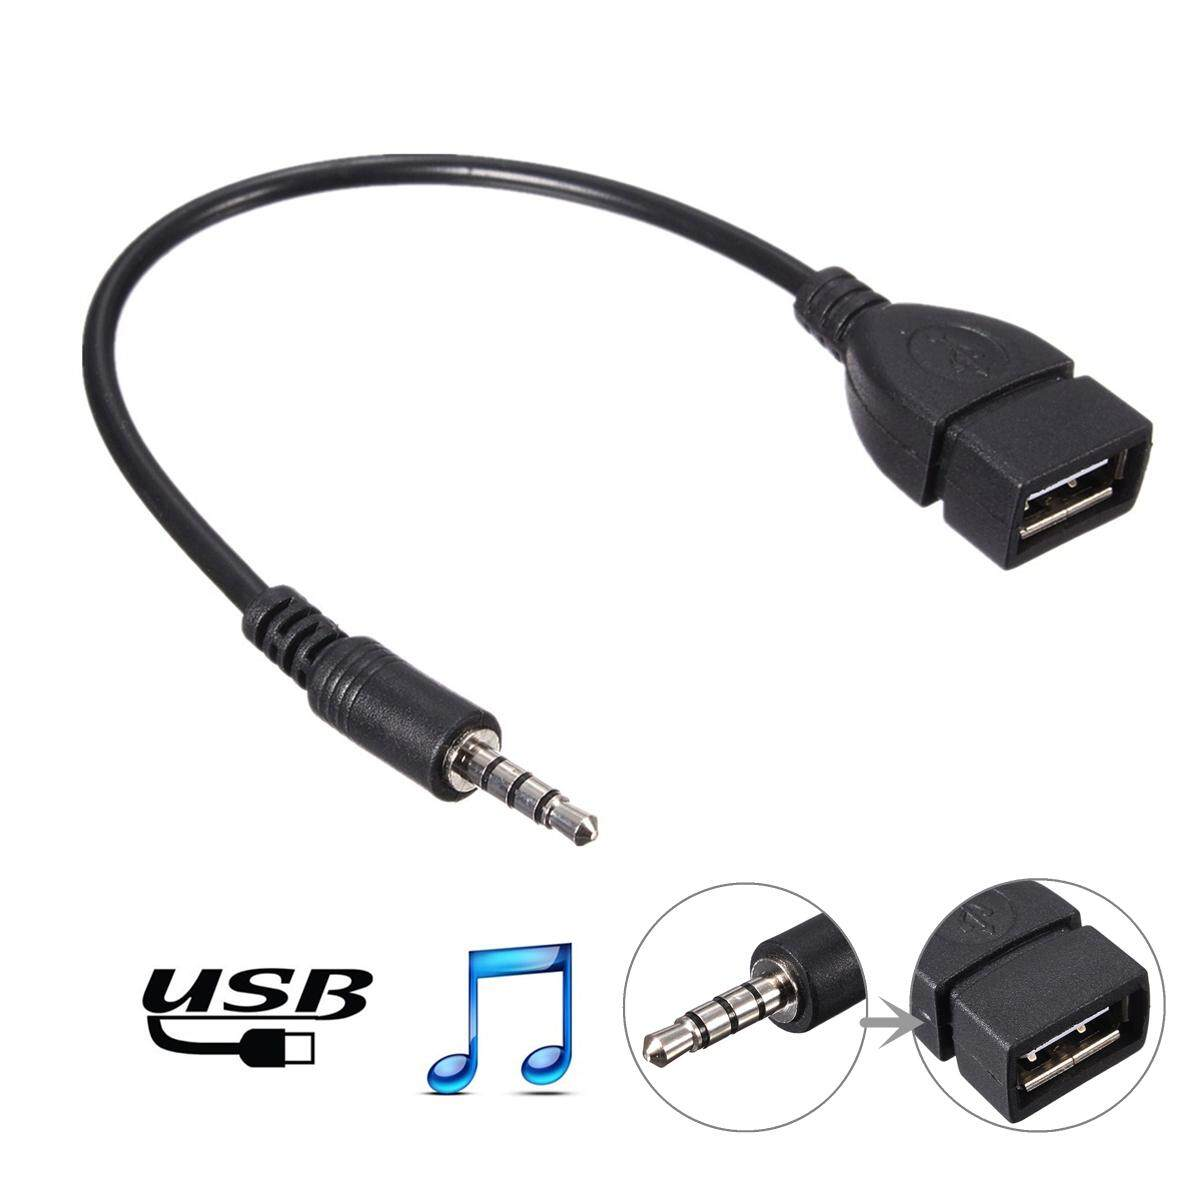 Shop Home Audio Accessories Buy At 25 Female Mono Jack Wiring 35mm Male Aux To Usb 20 Type A Otg Converter Adapter Cable